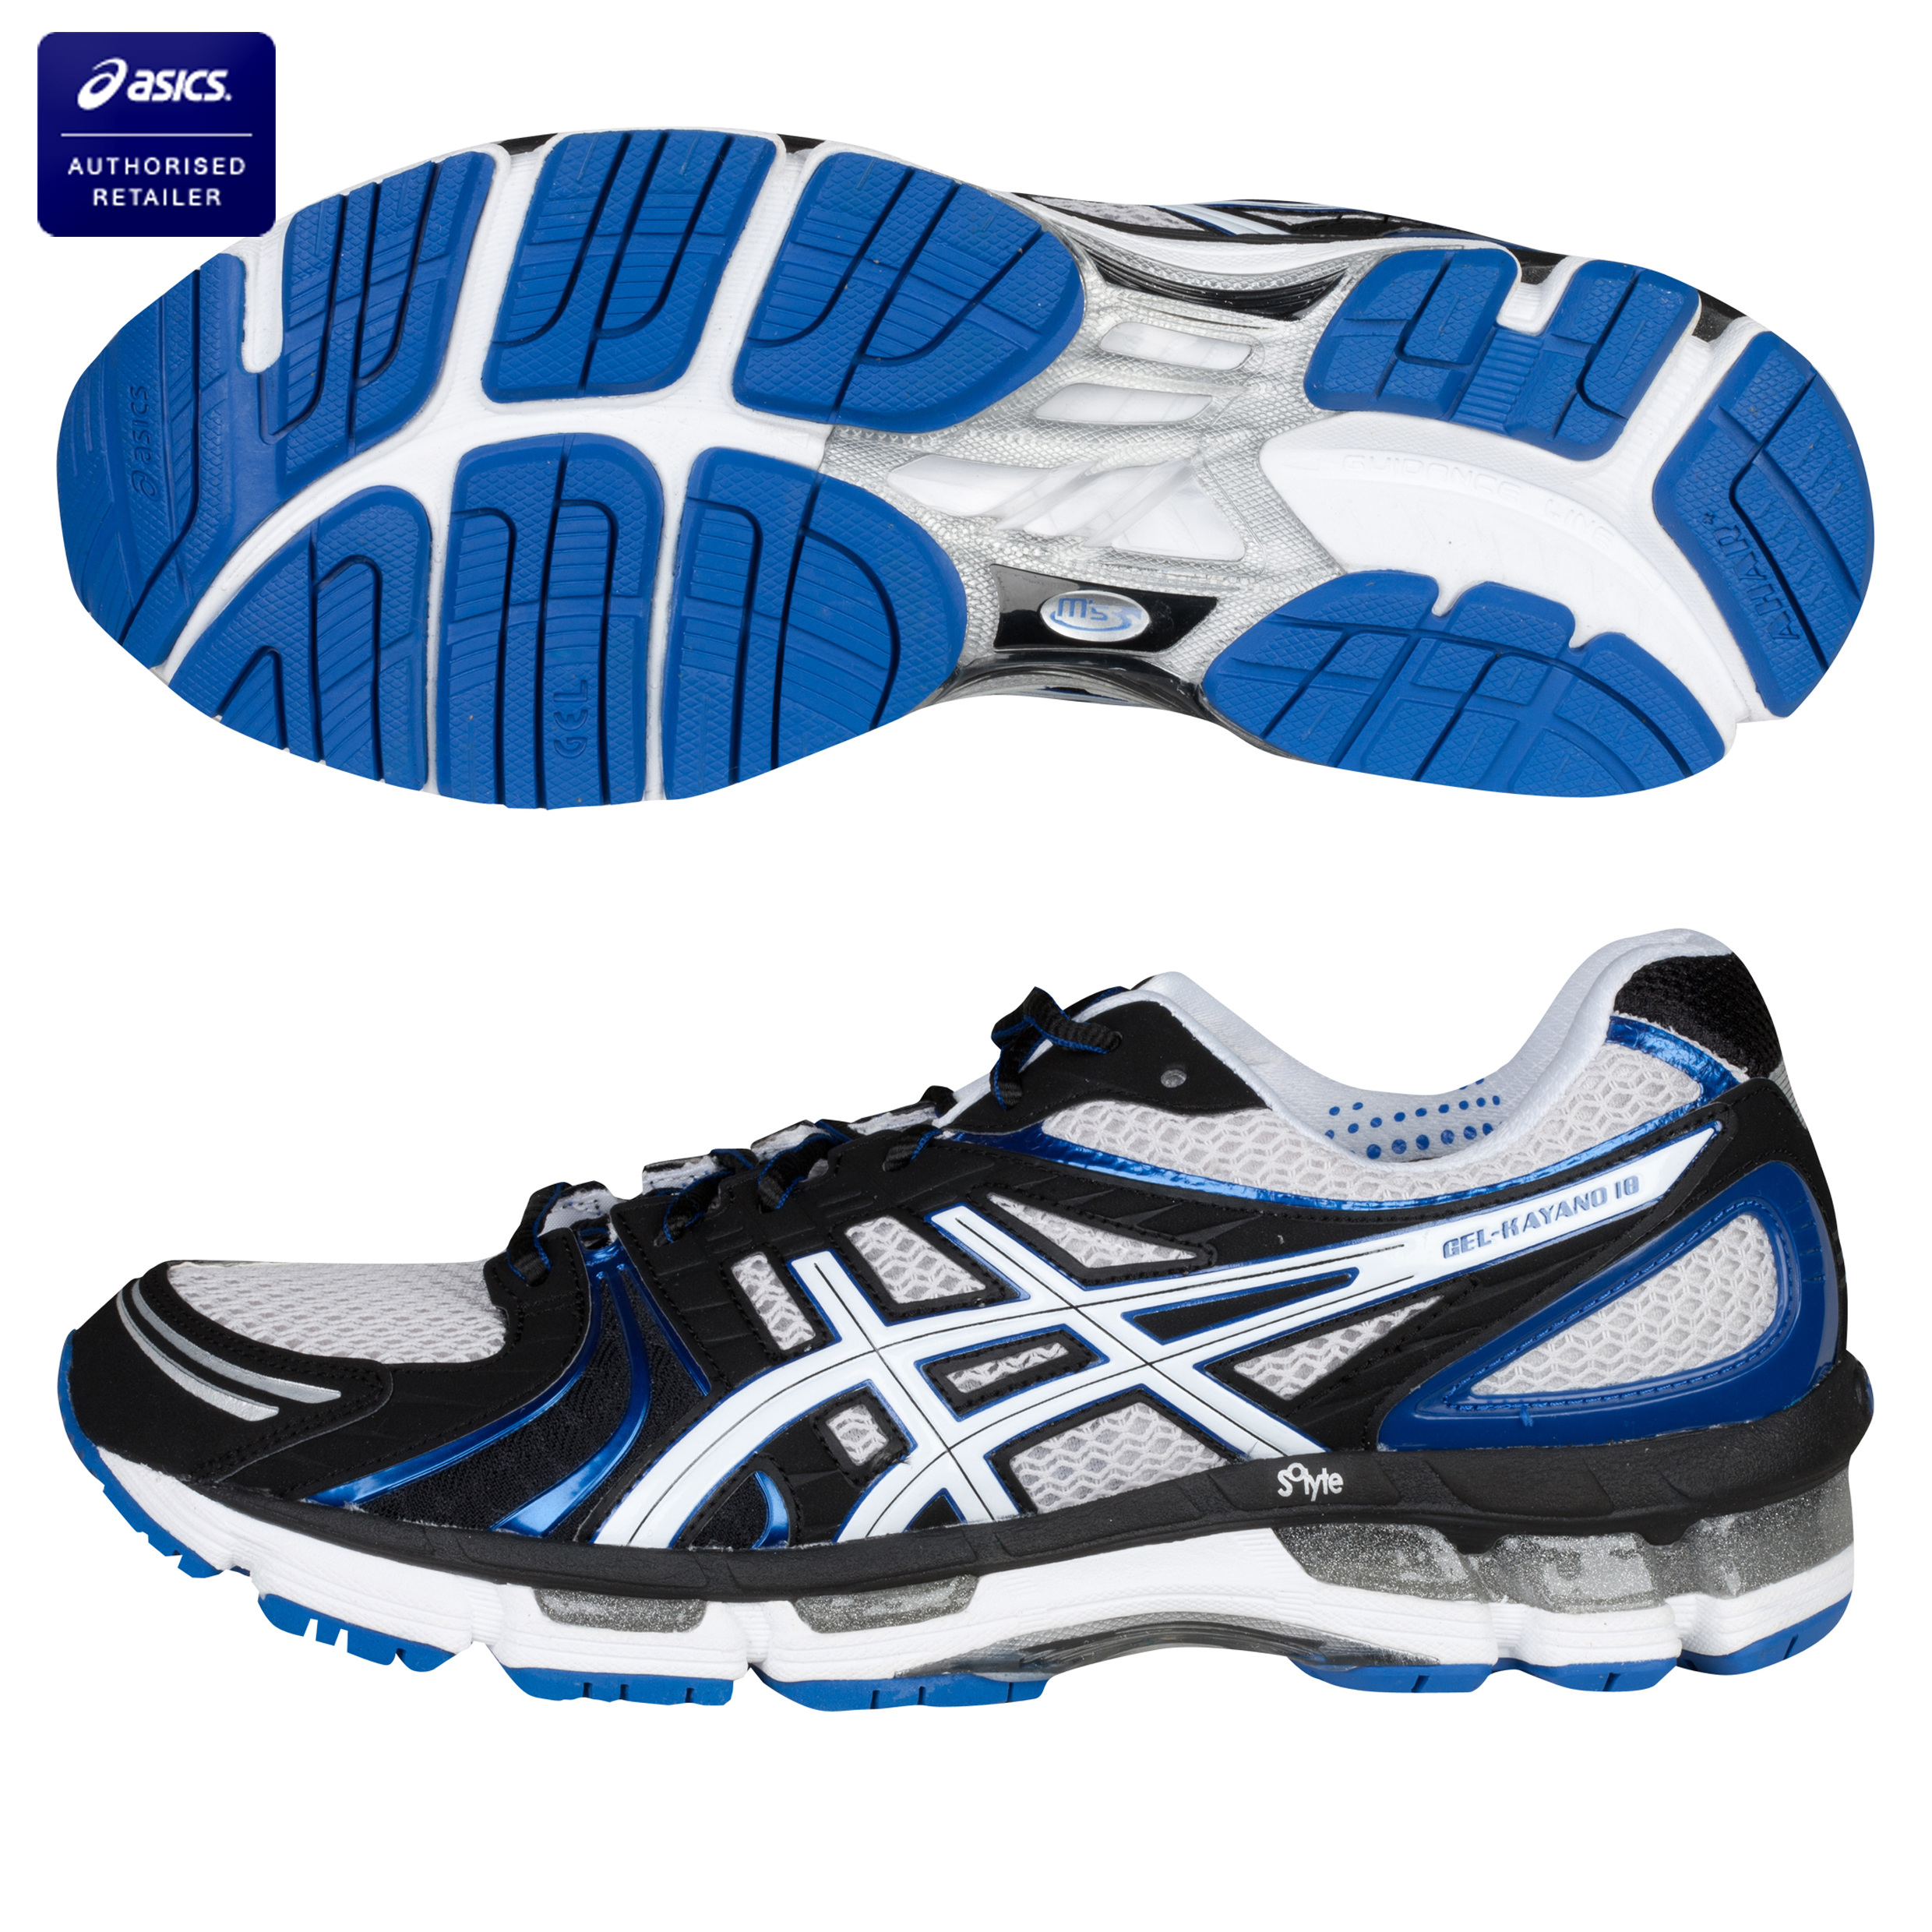 Asics Gel-Kayano 18 Running Trainers - Lightning/White/Royal